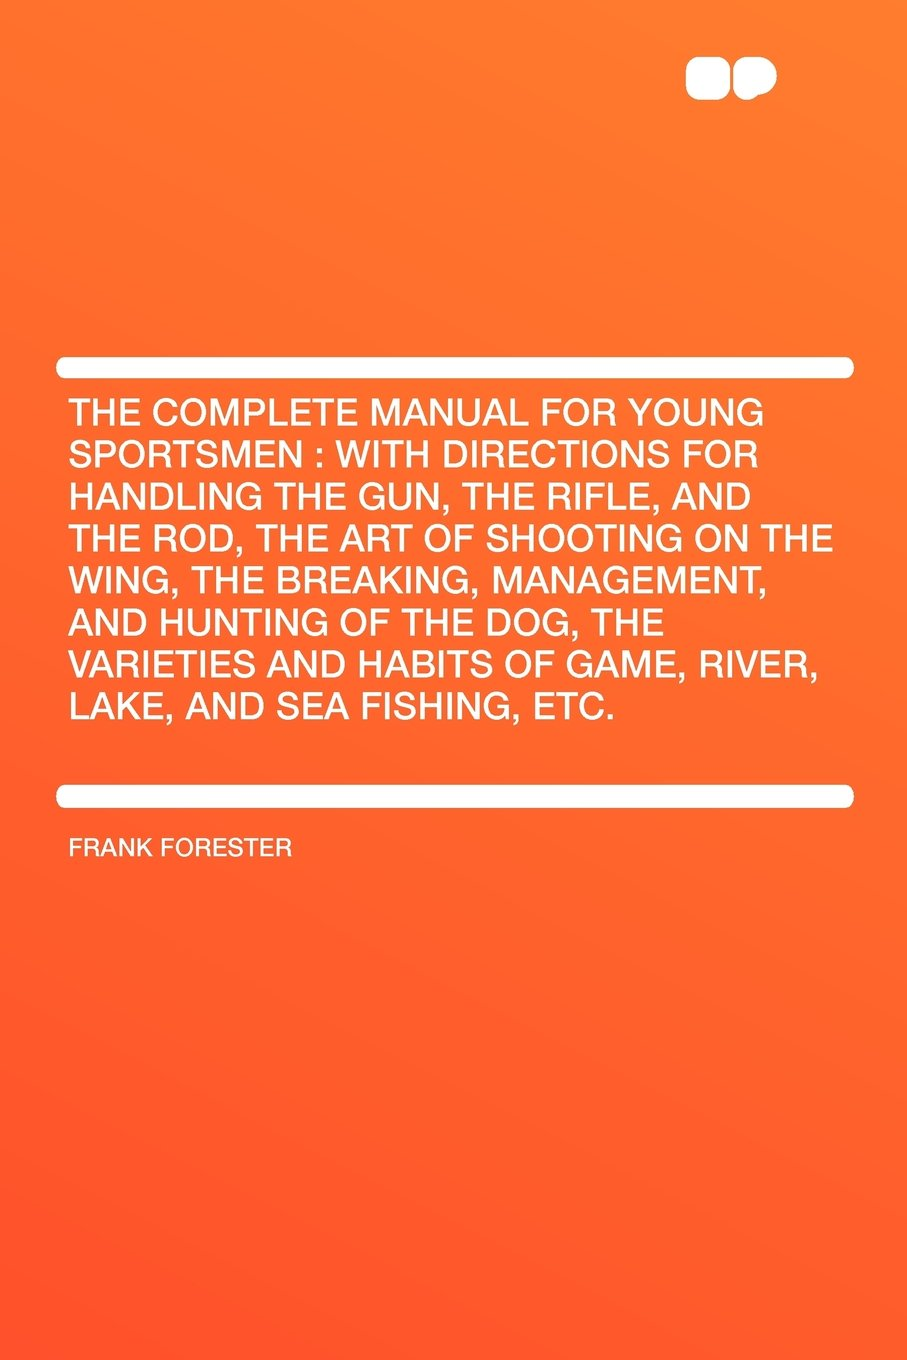 Read Online The Complete Manual for Young Sportsmen: With Directions for Handling the Gun, the Rifle, and the Rod, the Art of Shooting on the Wing, the Breaking, ... Habits of Game, River, Lake, and Sea Fishing, pdf epub